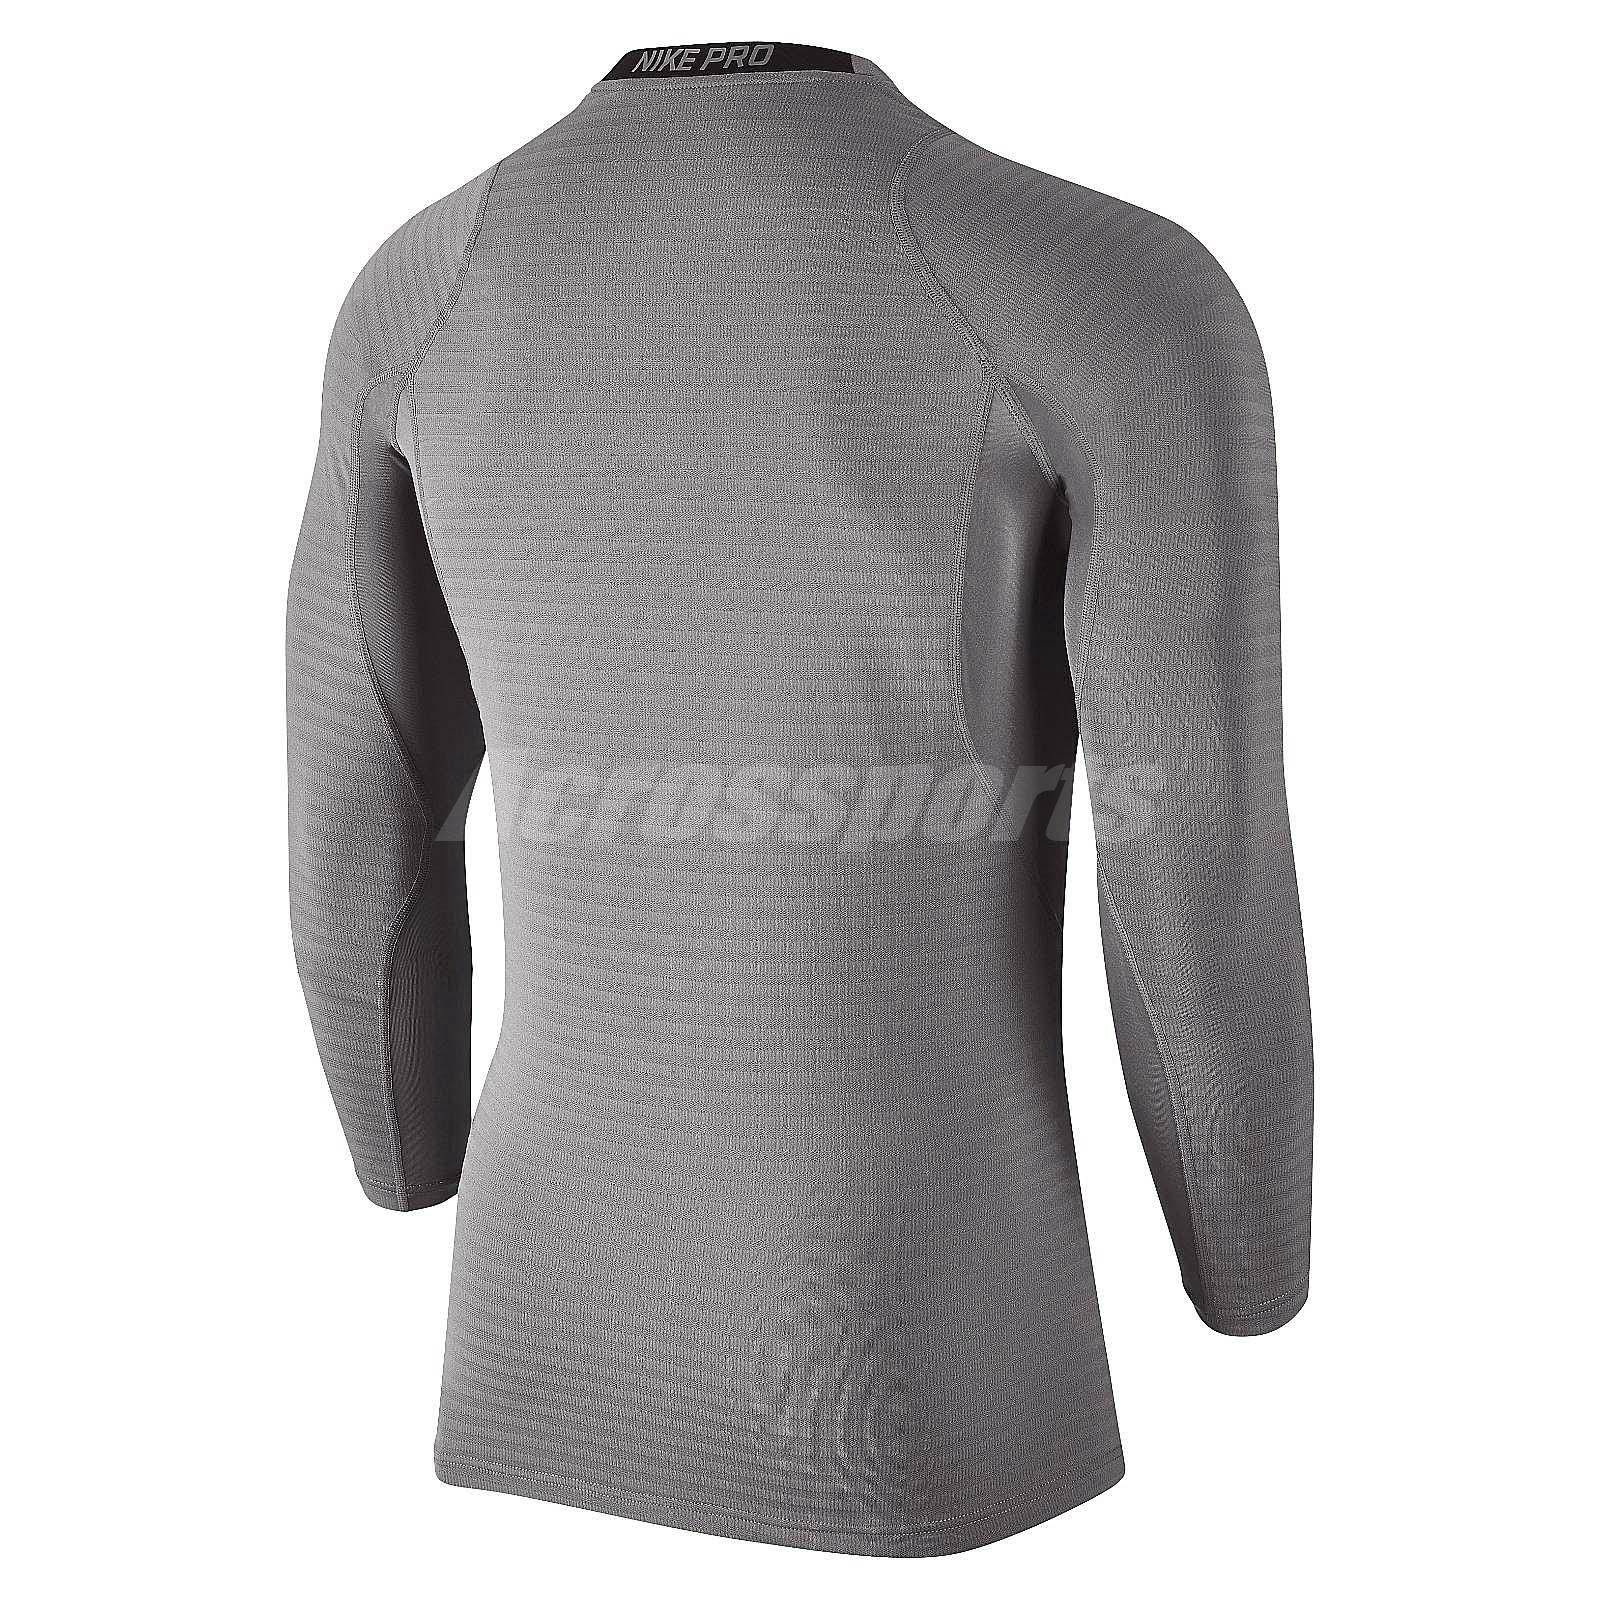 e9329ac9c4 Details about Nike Pro Warm Compression Long Sleeve Grey Mens Training  Shirts Sport 826596-037